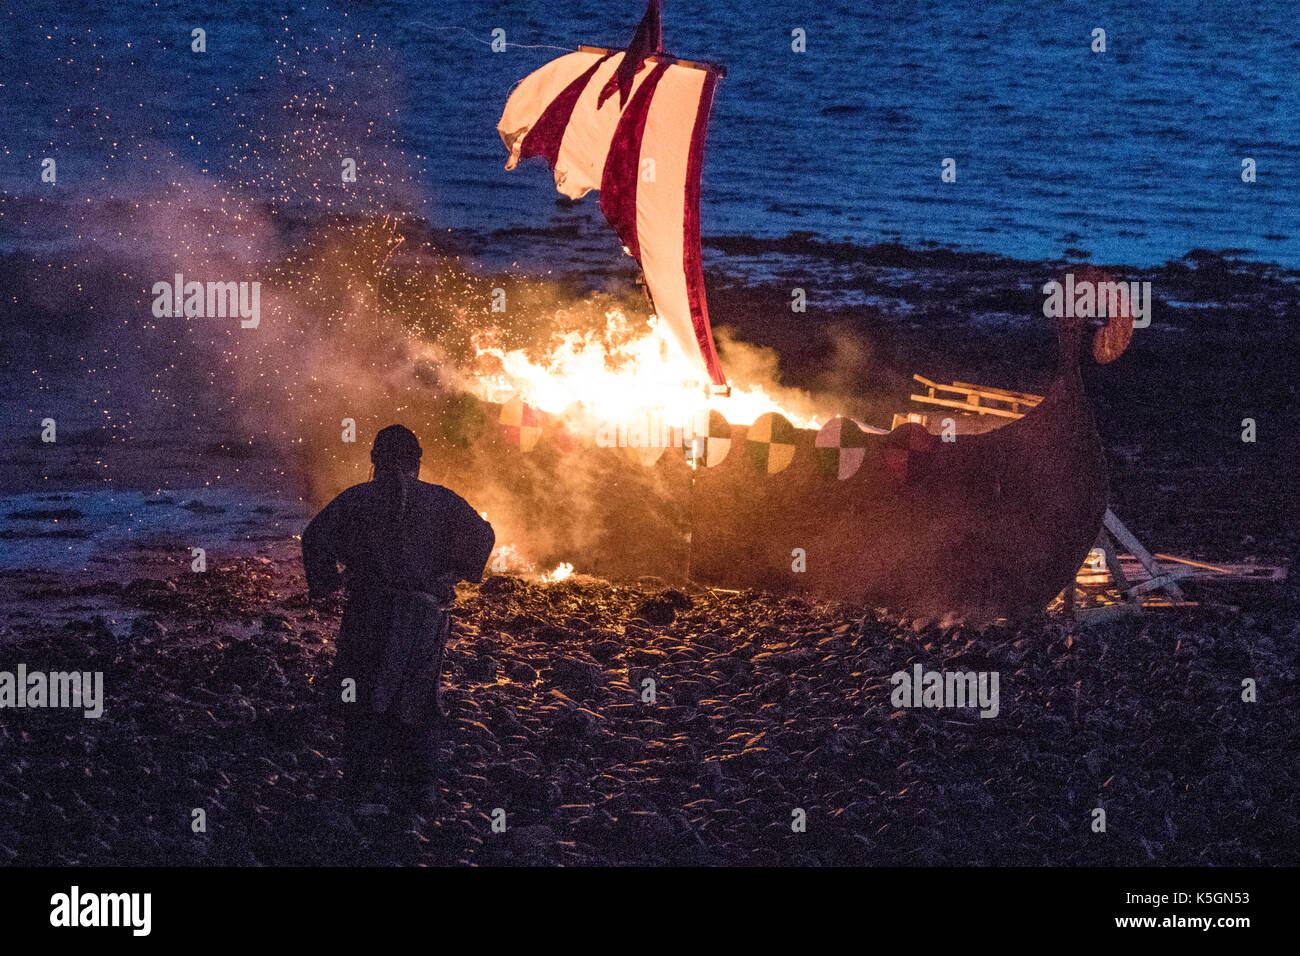 The burning of a Viking longship in Largs, Scotland, UK.  9th September, 2017. The Battle of Largs (2 October 1263) A Re-enactment event by the Swords of Dalriada, 13th Century, living history group.  It was an indecisive engagement between the kingdoms of Norway and Scotland, on the Firth of Clyde near Largs, Scotland. The conflict formed part of the Norwegian expedition against Scotland in 1263, in which Haakon Haakonarson, King of Norway attempted to reassert Norwegian sovereignty over the western seaboard of Scotland. - Stock Image